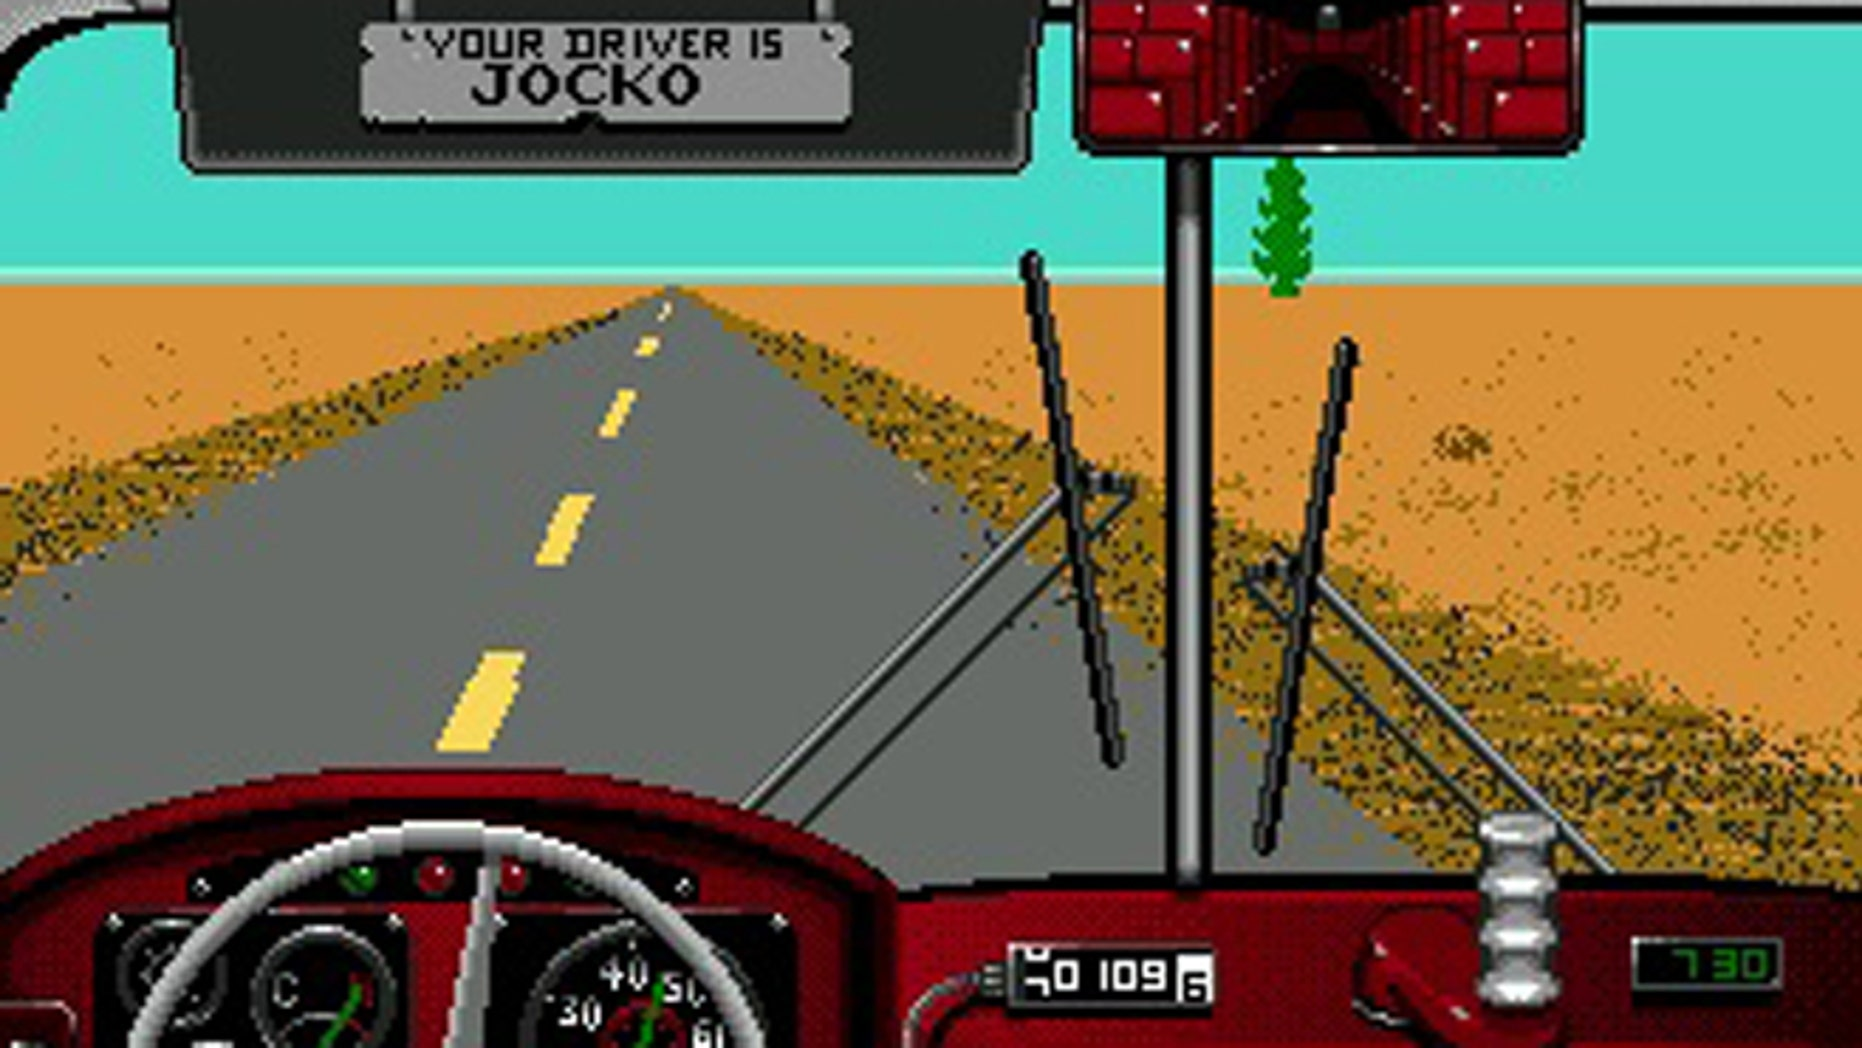 A screenshot from Desert Bus, an unreleased video game from comedians Penn and Teller that tasks the player with the most boring drive imaginable.